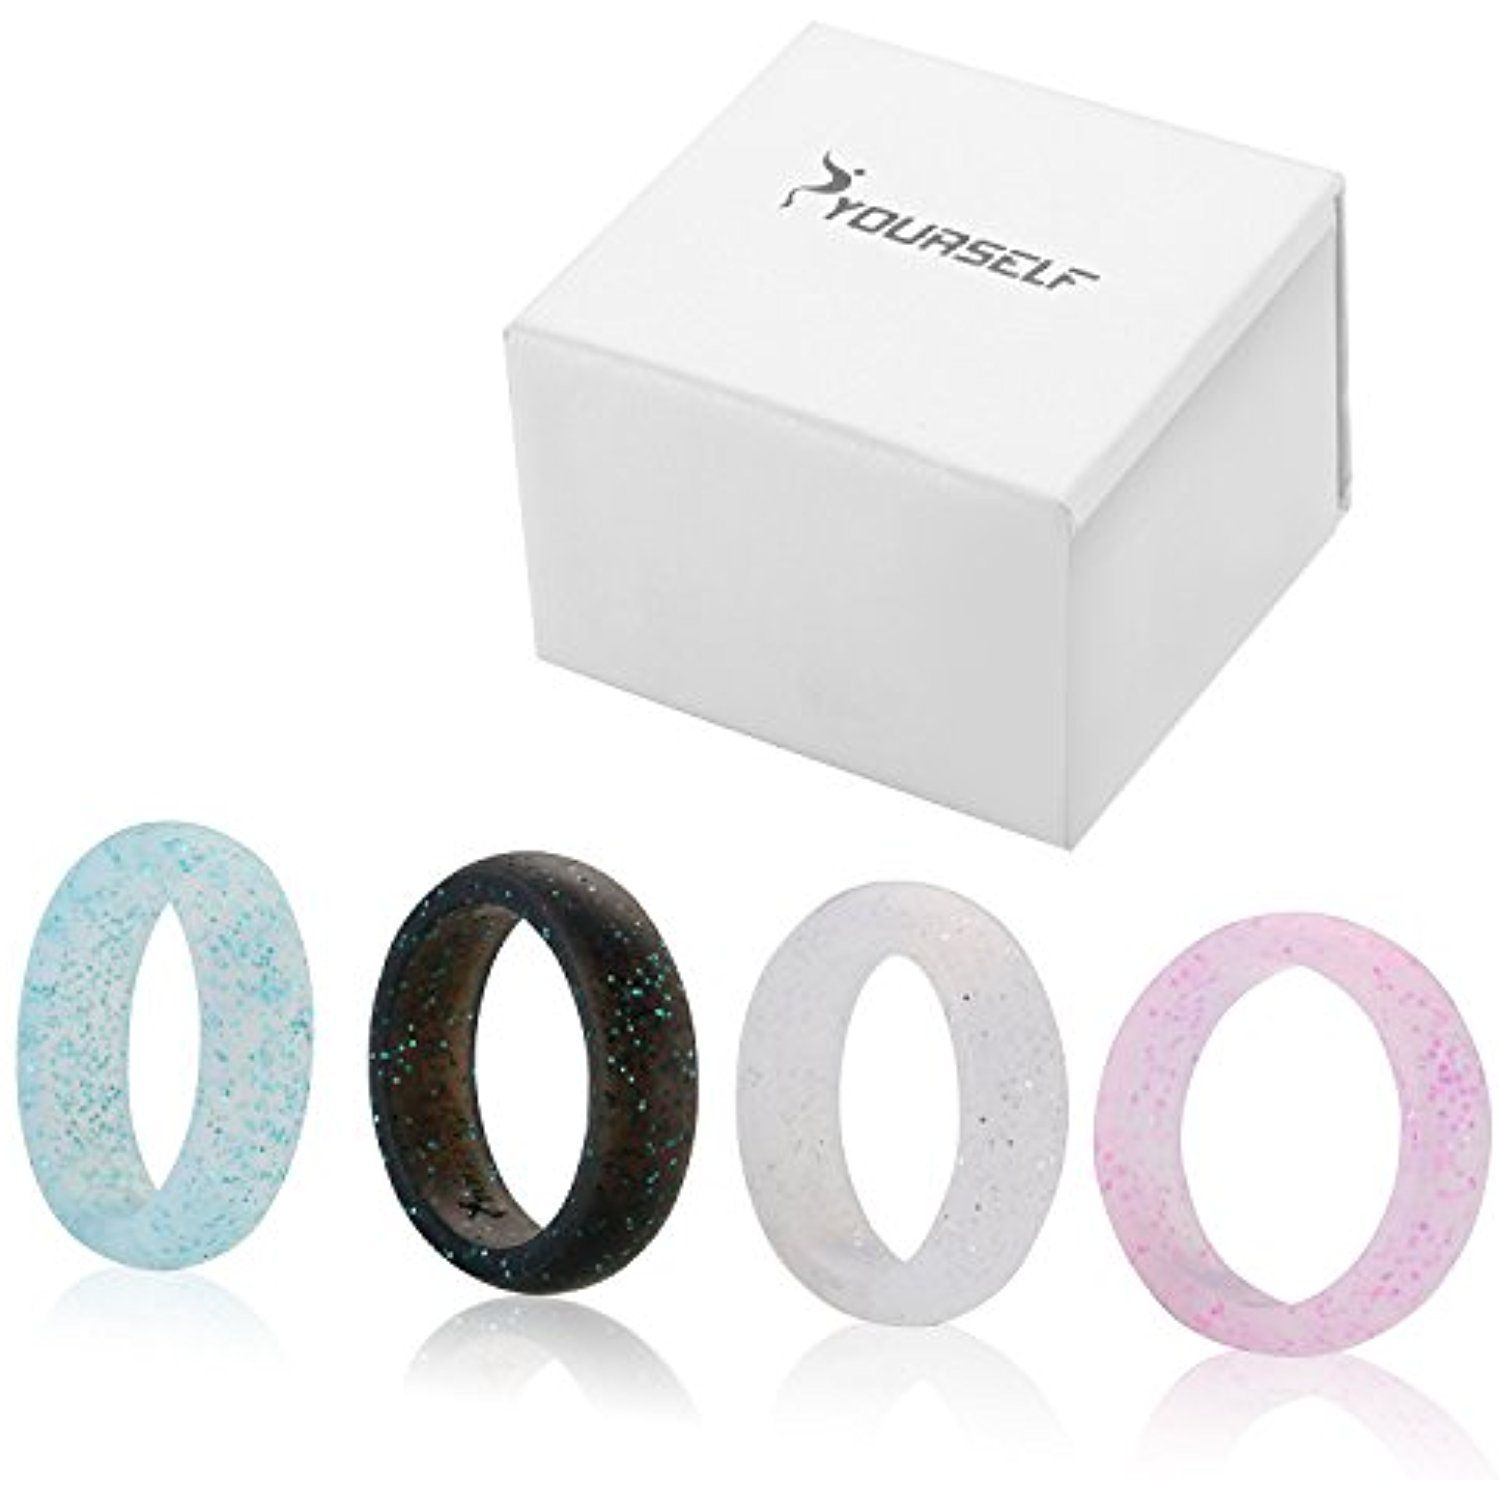 Syourself Silicone Wedding Ring Band for Men or Women Safe